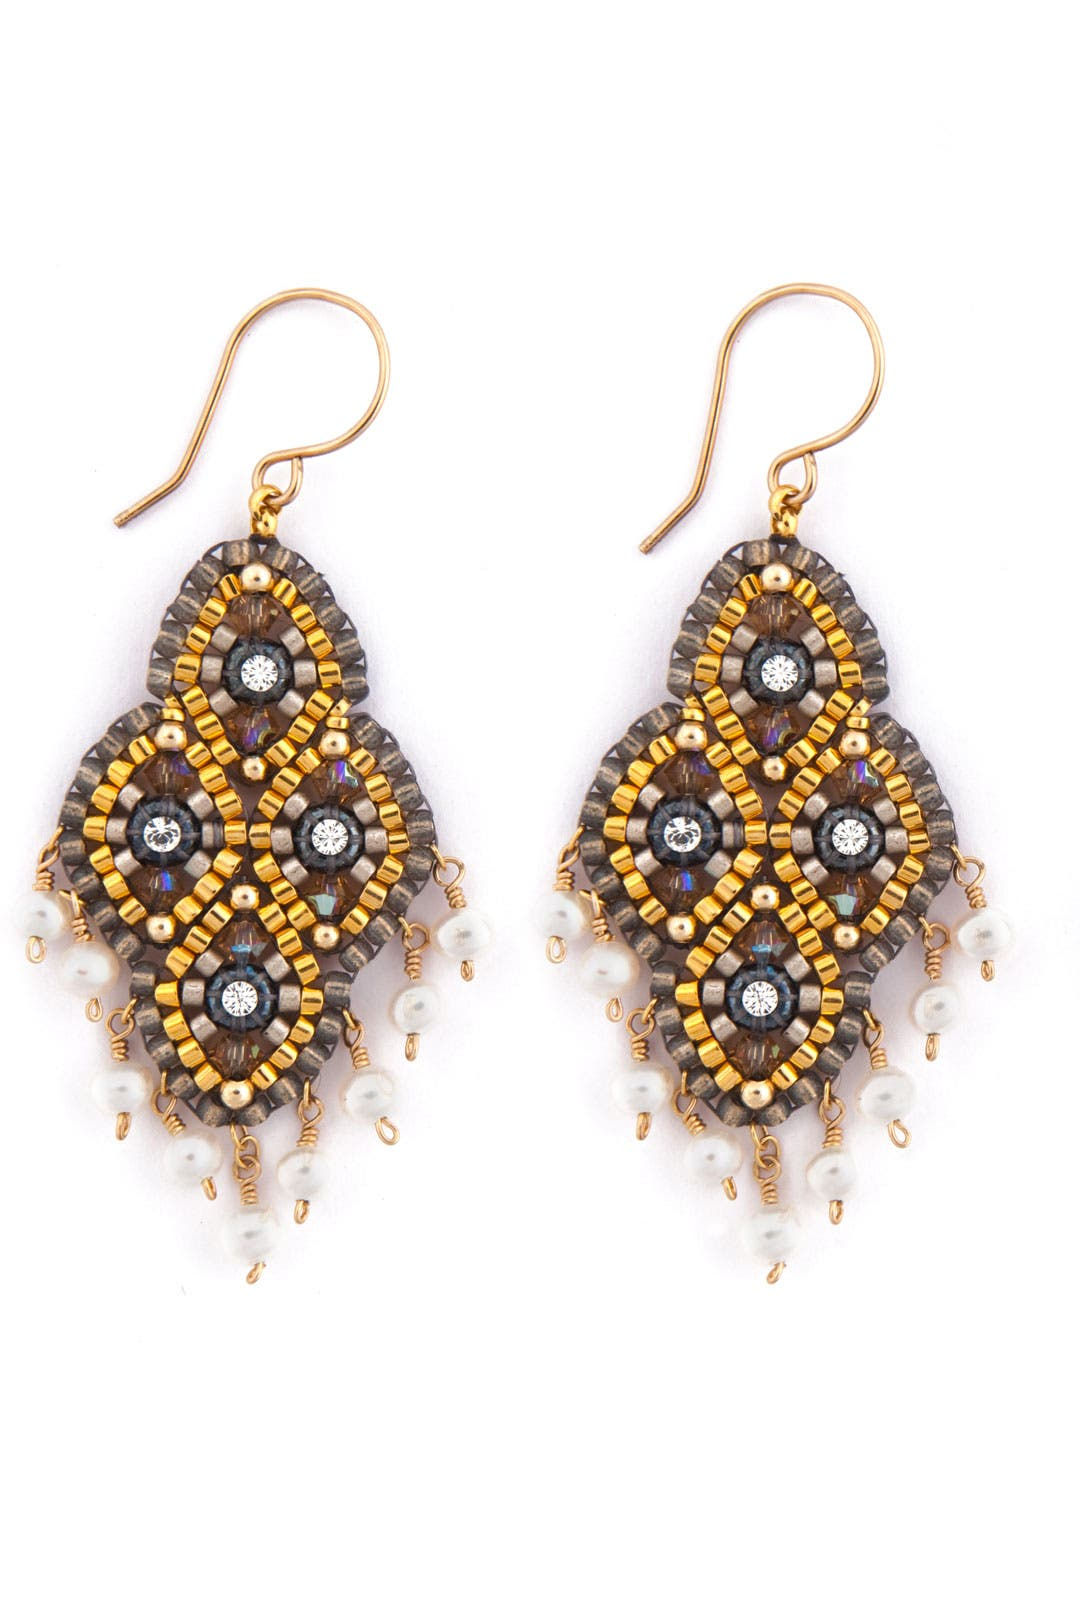 Gypsy Pearl Earrings by Miguel Ases